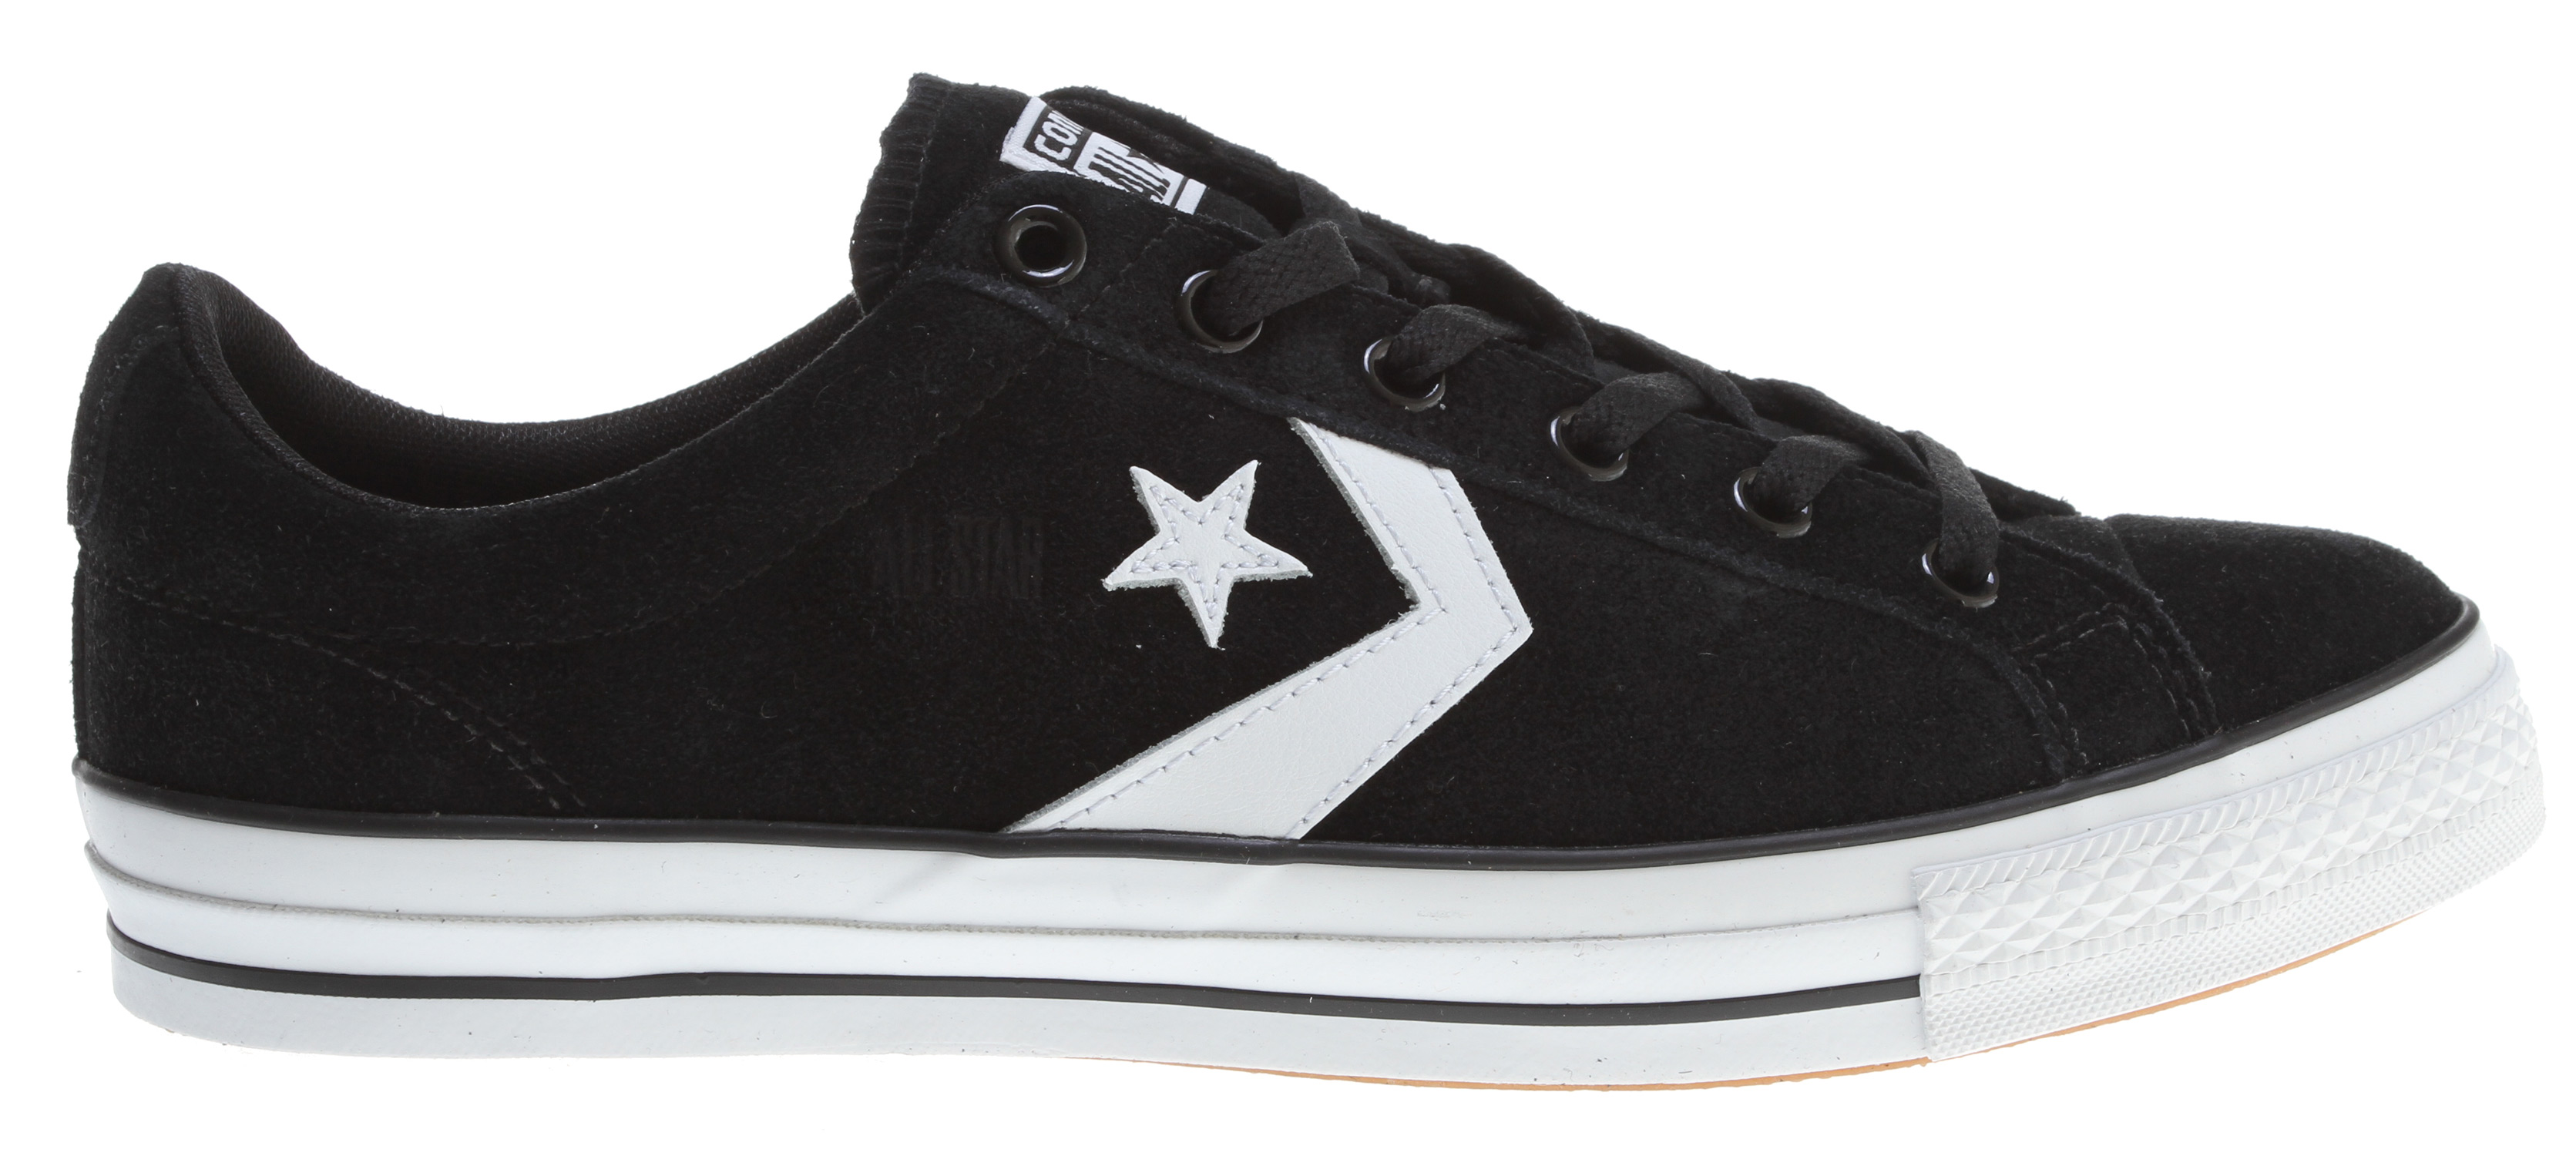 Skateboard Key Features of the Converse Star Player LS OX Skate Shoes: Suede and/or Canvas upper Padded collar for superior comfort Metal eyelets Rubber capped toe Super grippy vulcanized outsole - $48.95